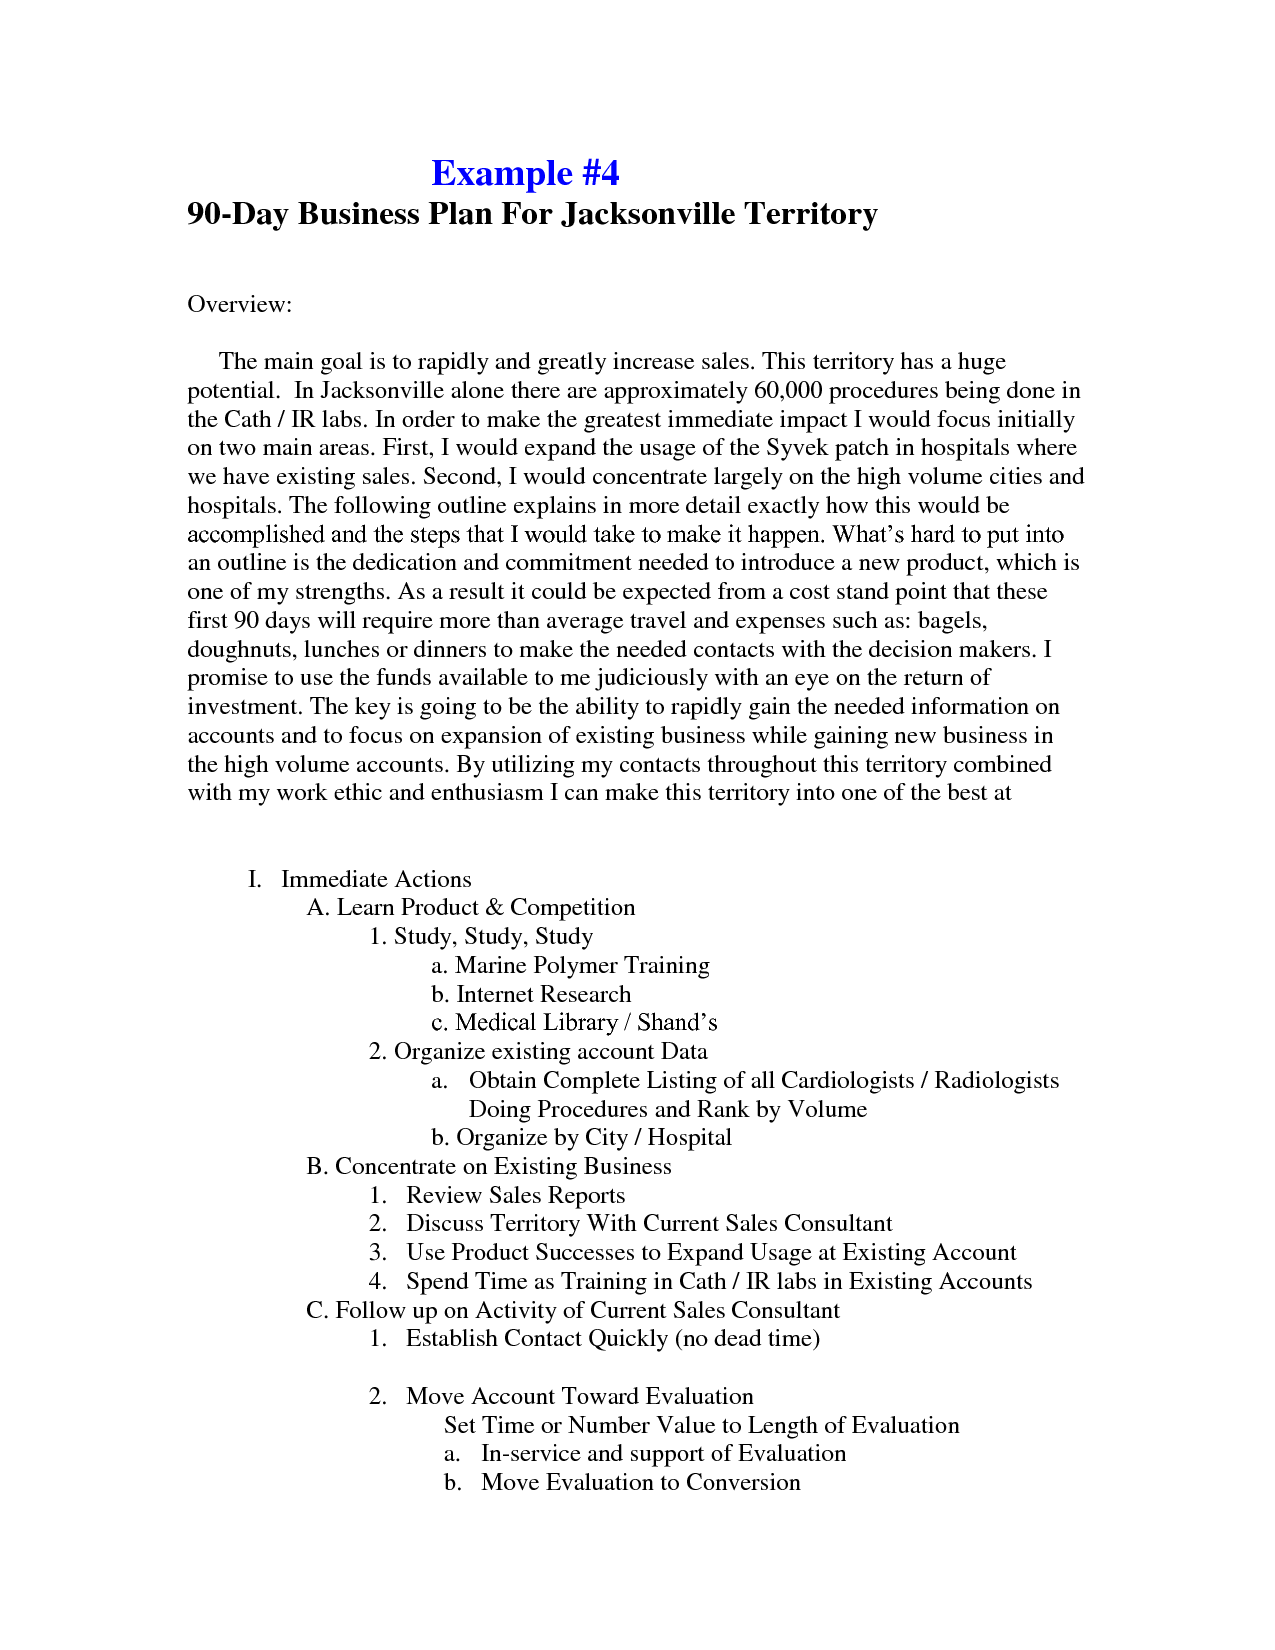 day business plan template free 90 examples sales 5e0t96x4 t